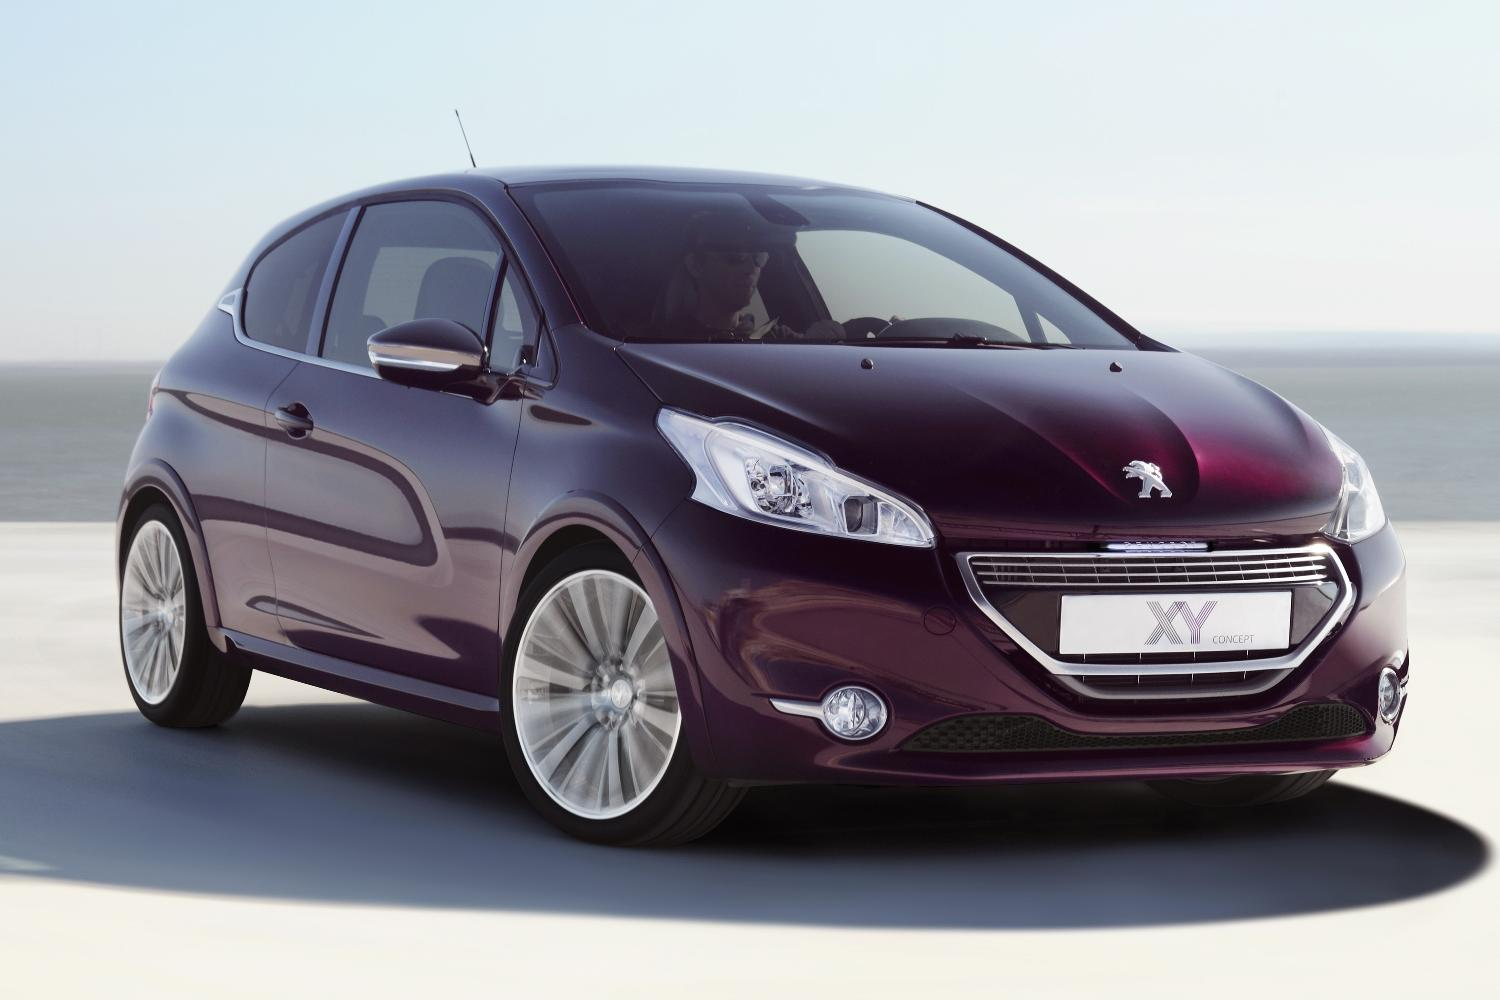 peugeot 208 xy concept to debut in geneva autoevolution. Black Bedroom Furniture Sets. Home Design Ideas